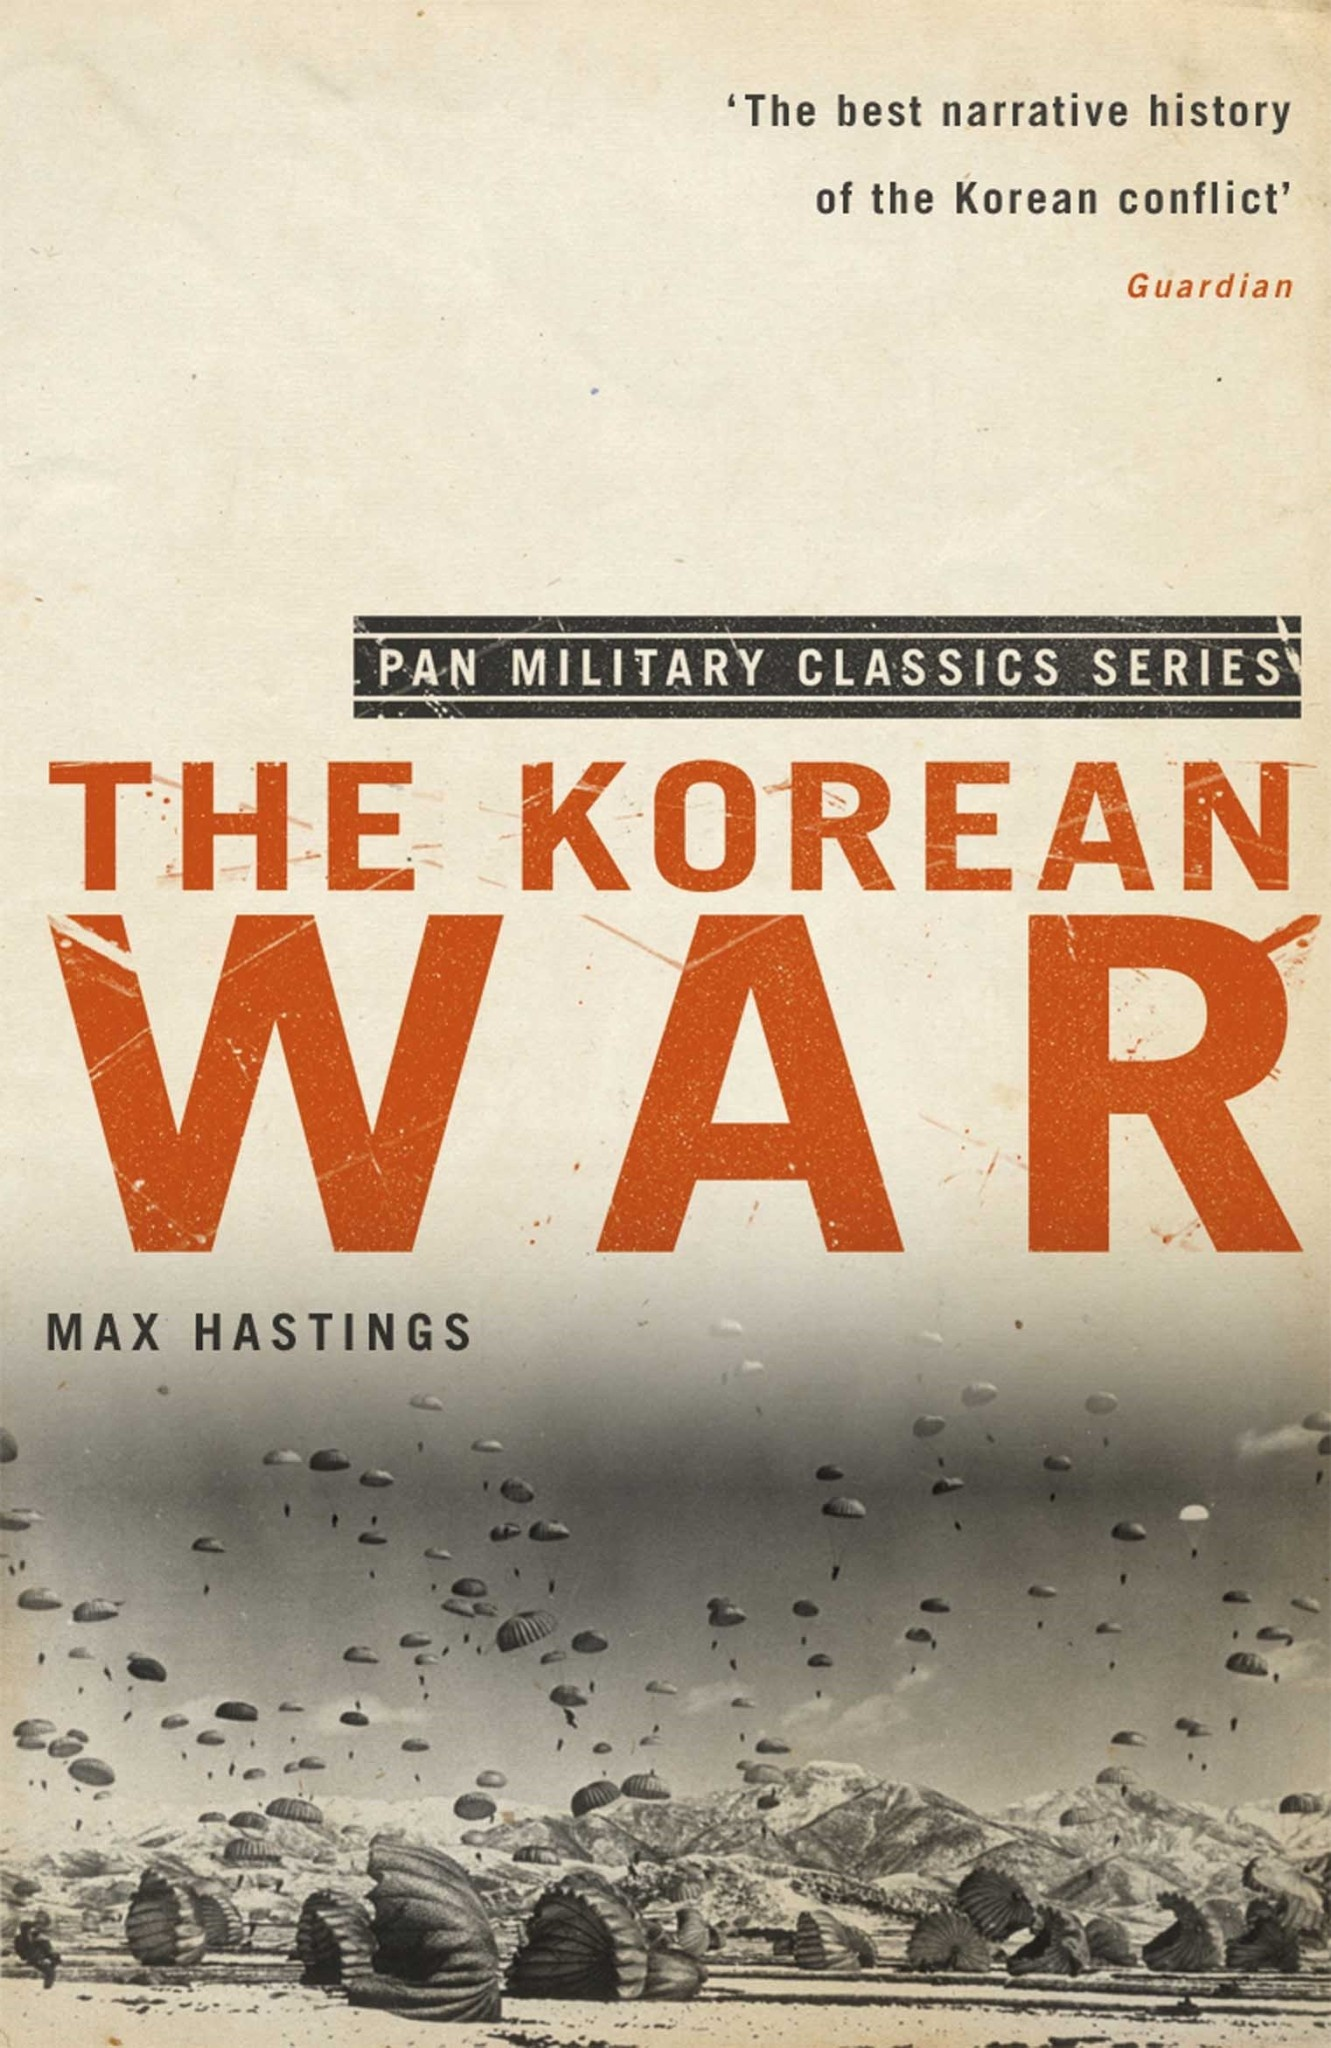 The Korean War Author Max Hastings